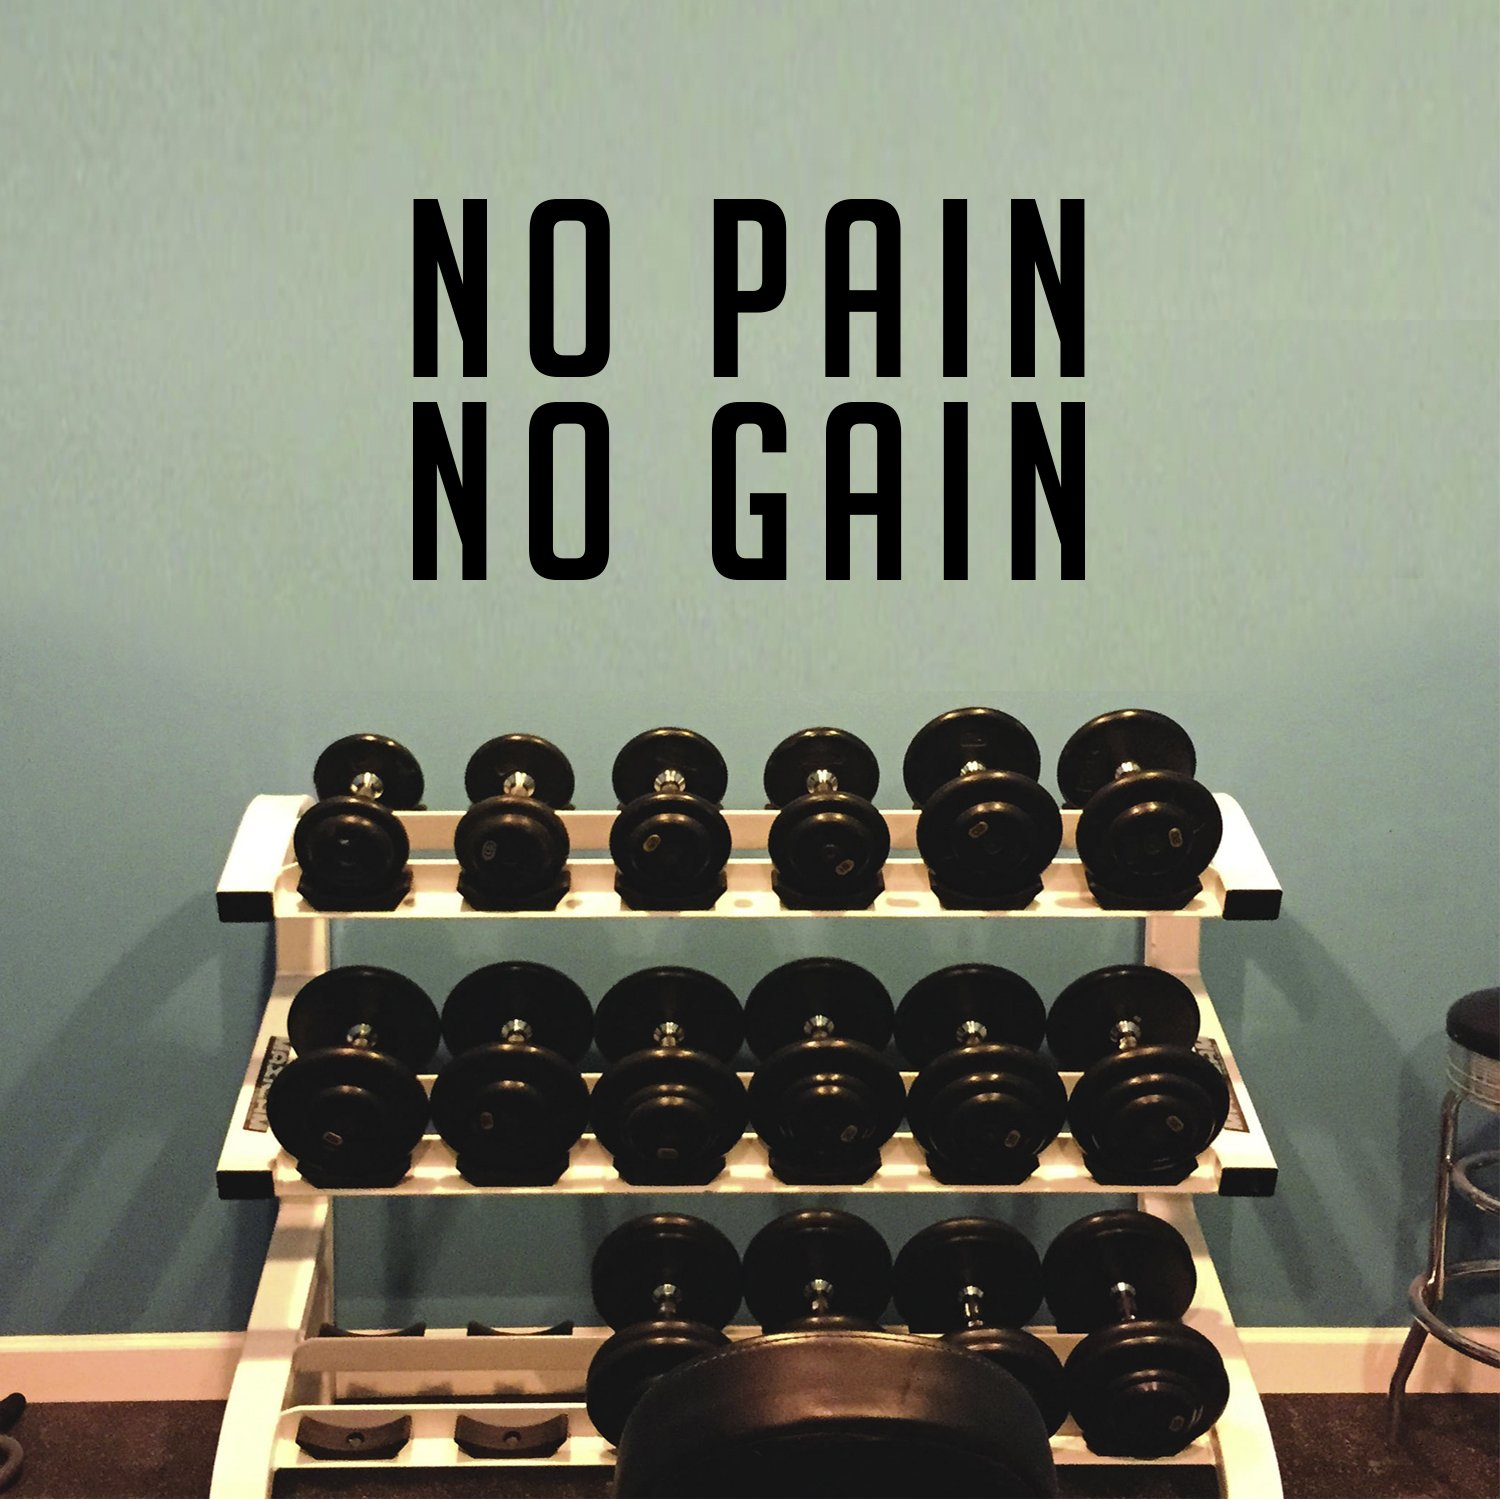 Amazon Inspirational Gym Quotes Wall Art Vinyl Decal No Pain